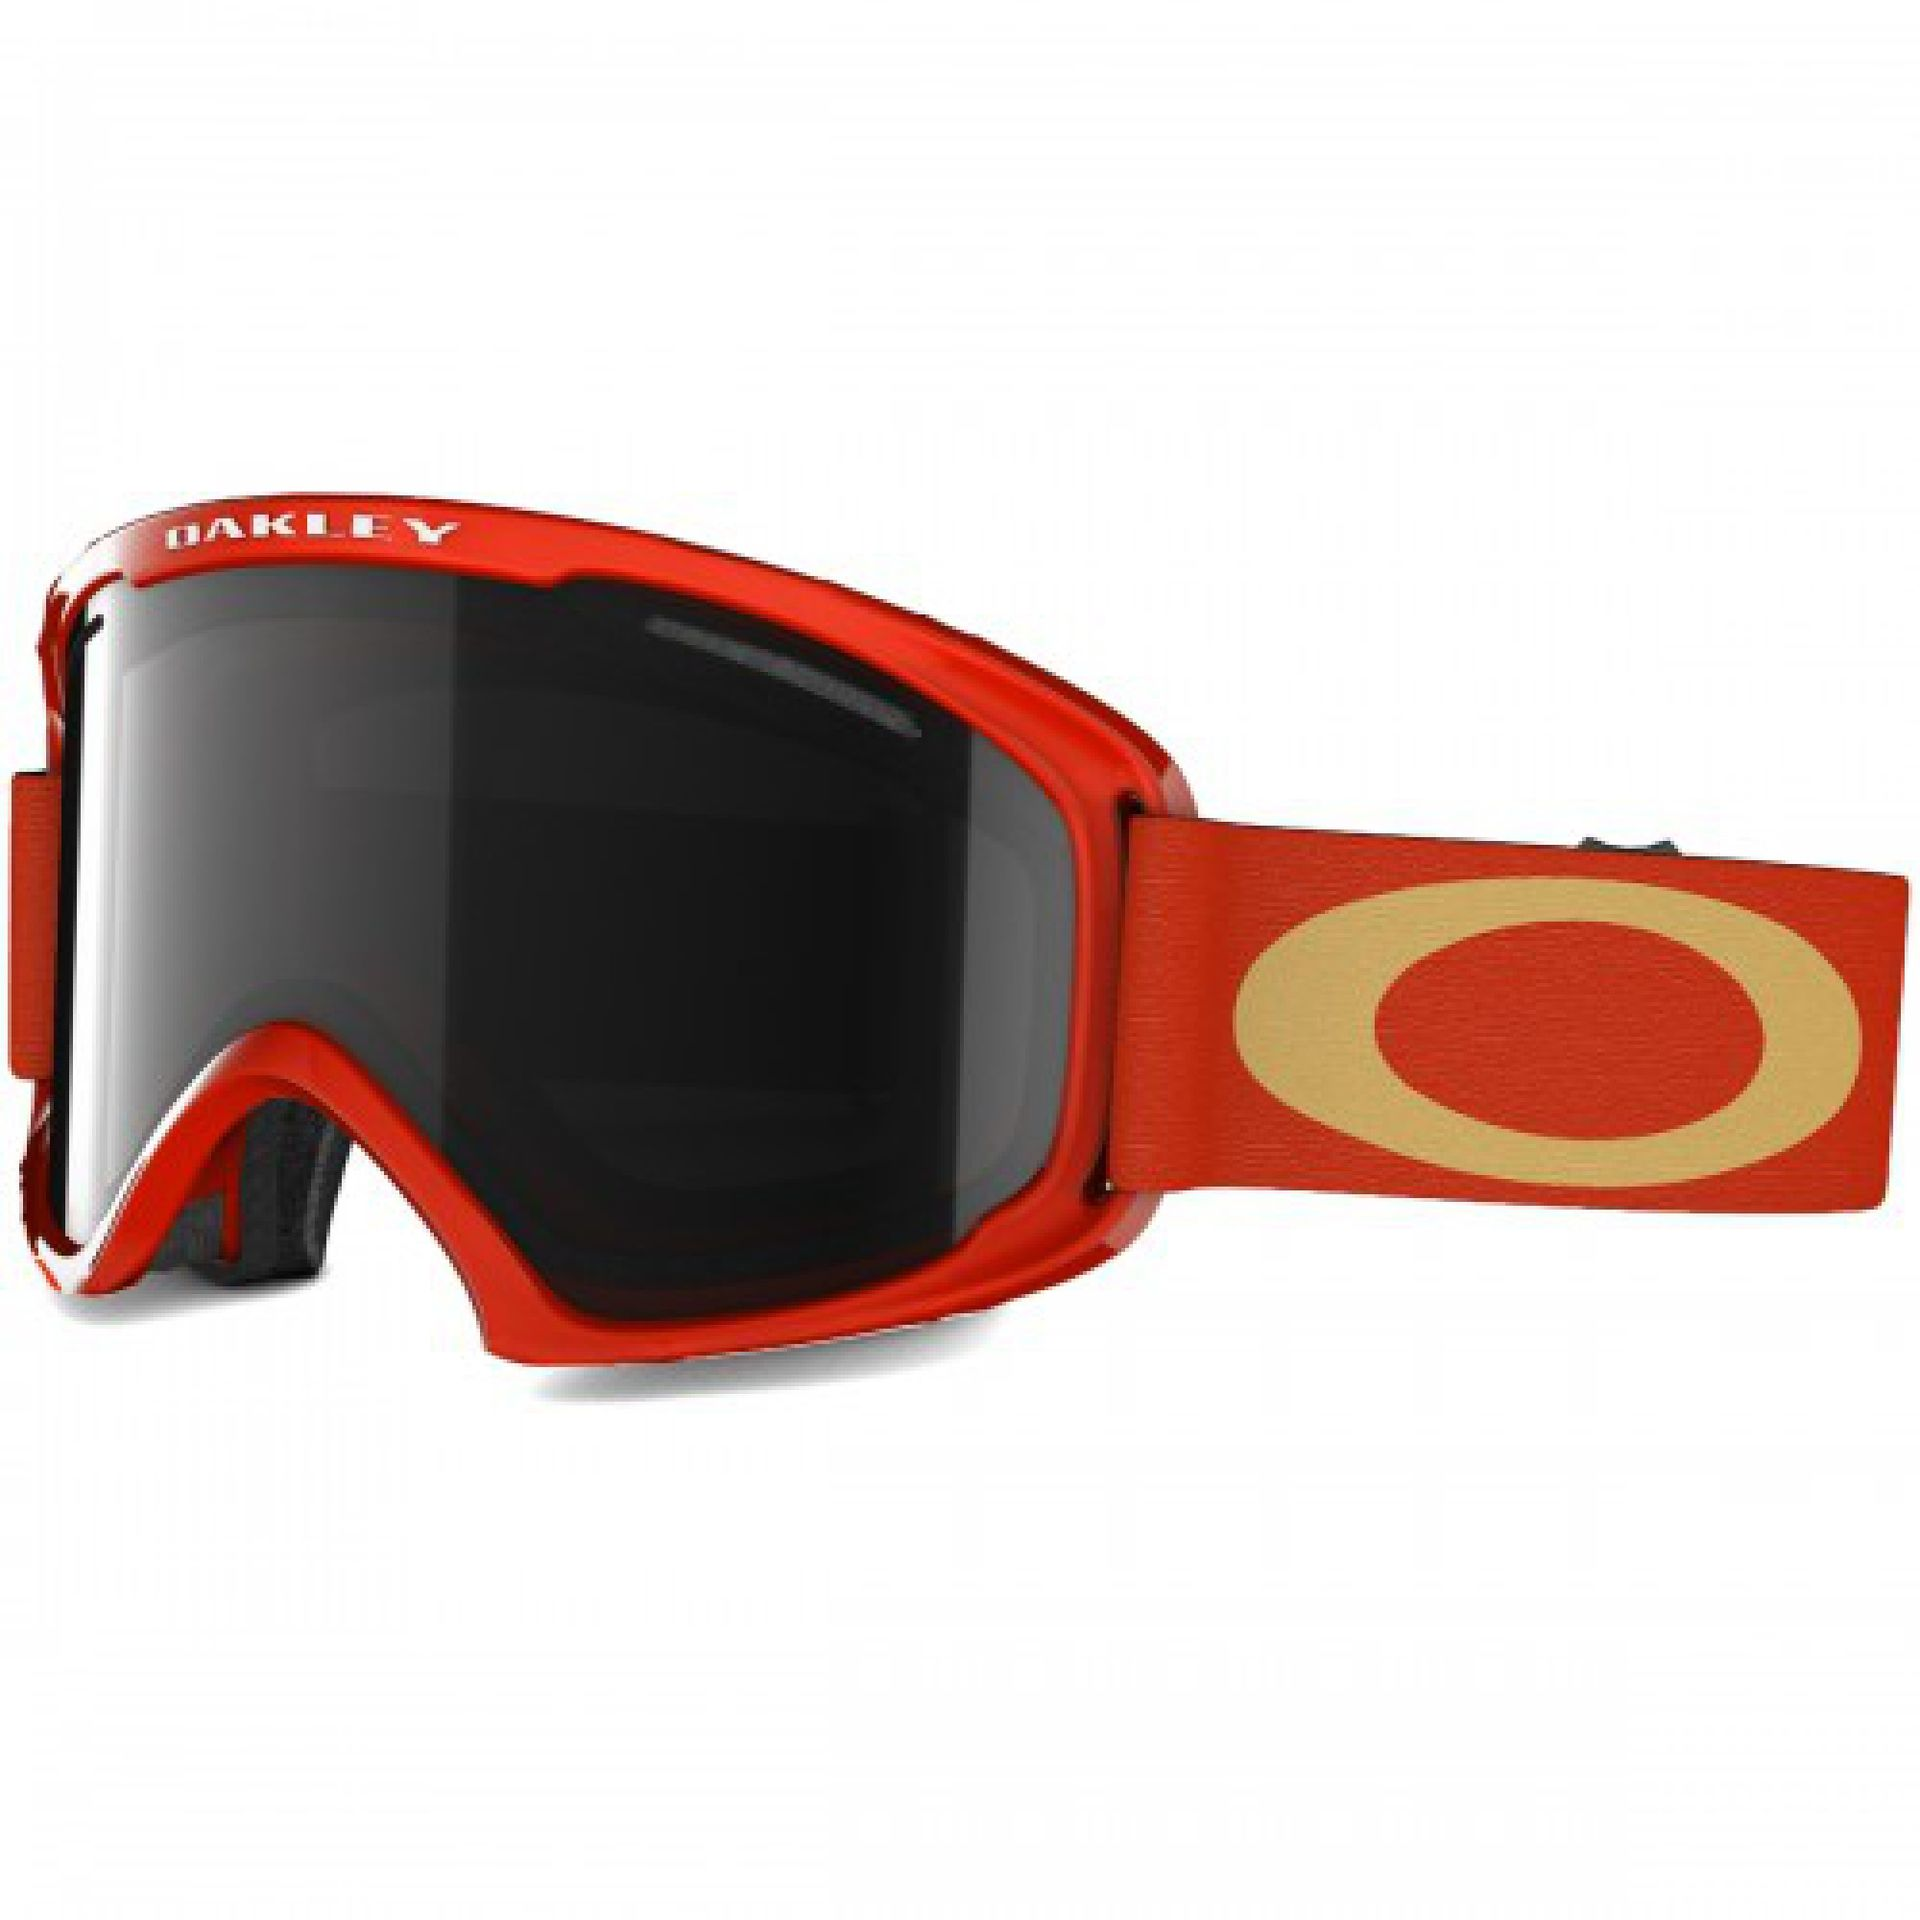 GOGLE OAKLEY O2 XL VIPER RED